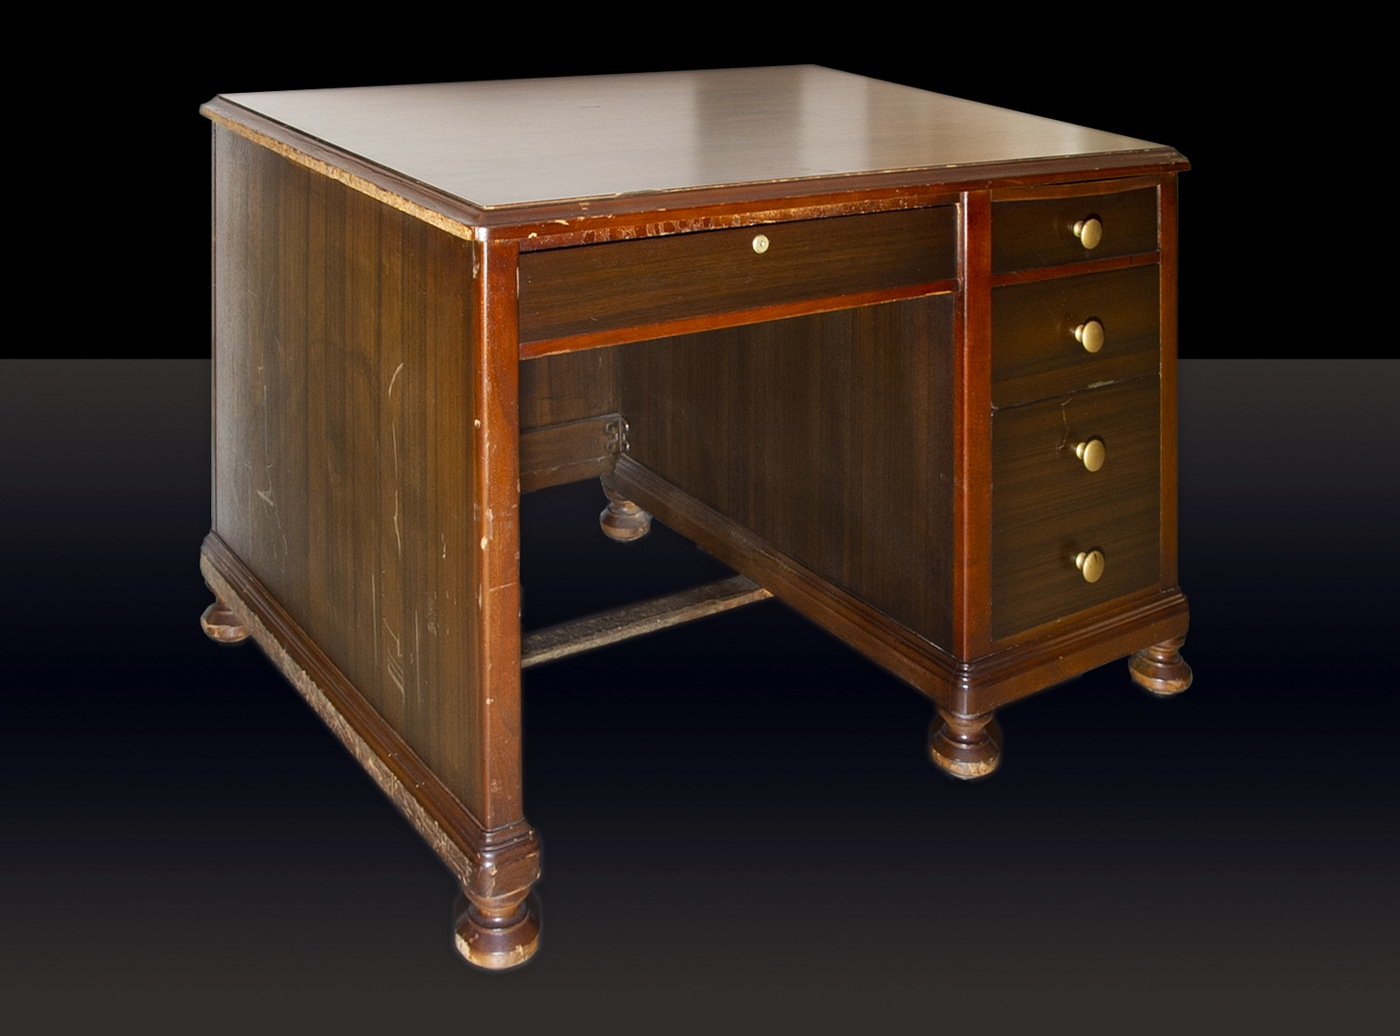 The FBI's June Artifact of the Month is a desk used during the trial of Nazi saboteurs in the 1940s.